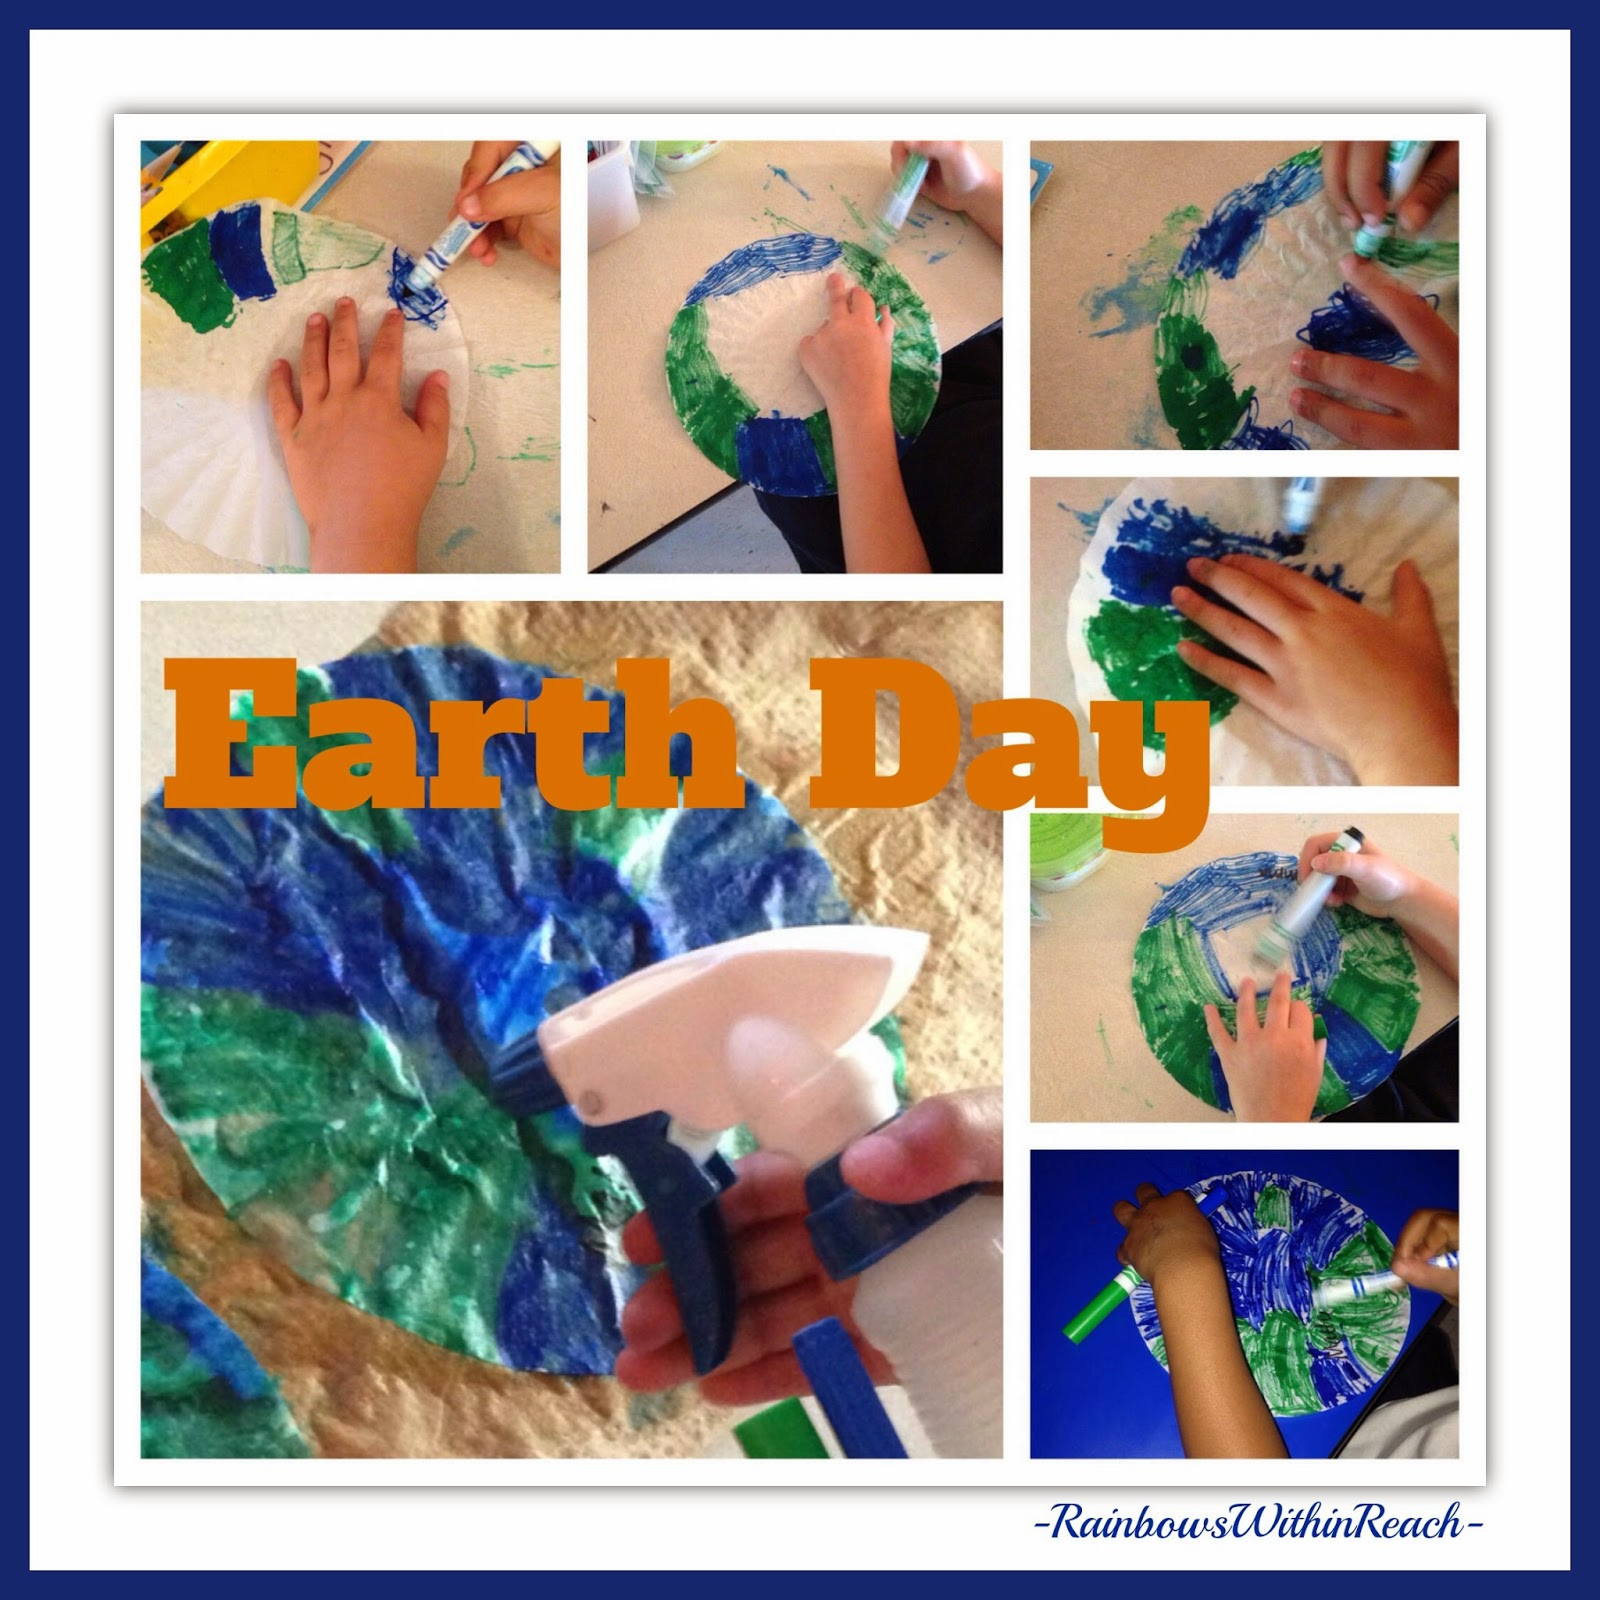 Earth Day: Process Art with markers and Spray! via RainbowsWithinReach